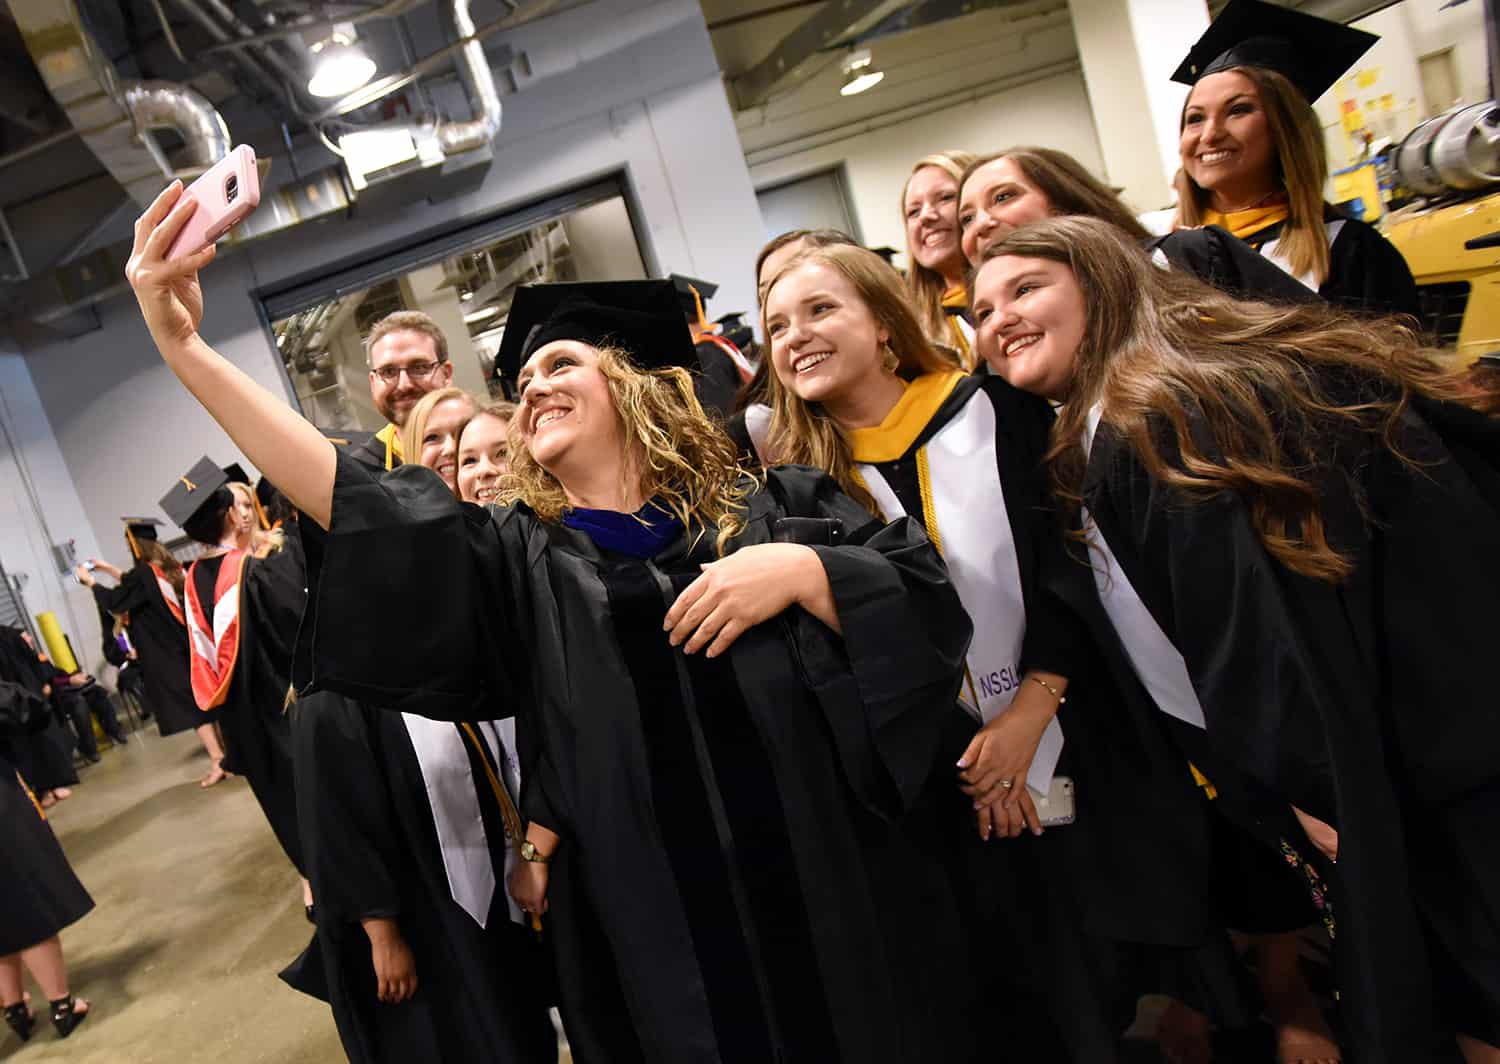 Uams Graduates 942 New Health Care Professionals Uams News